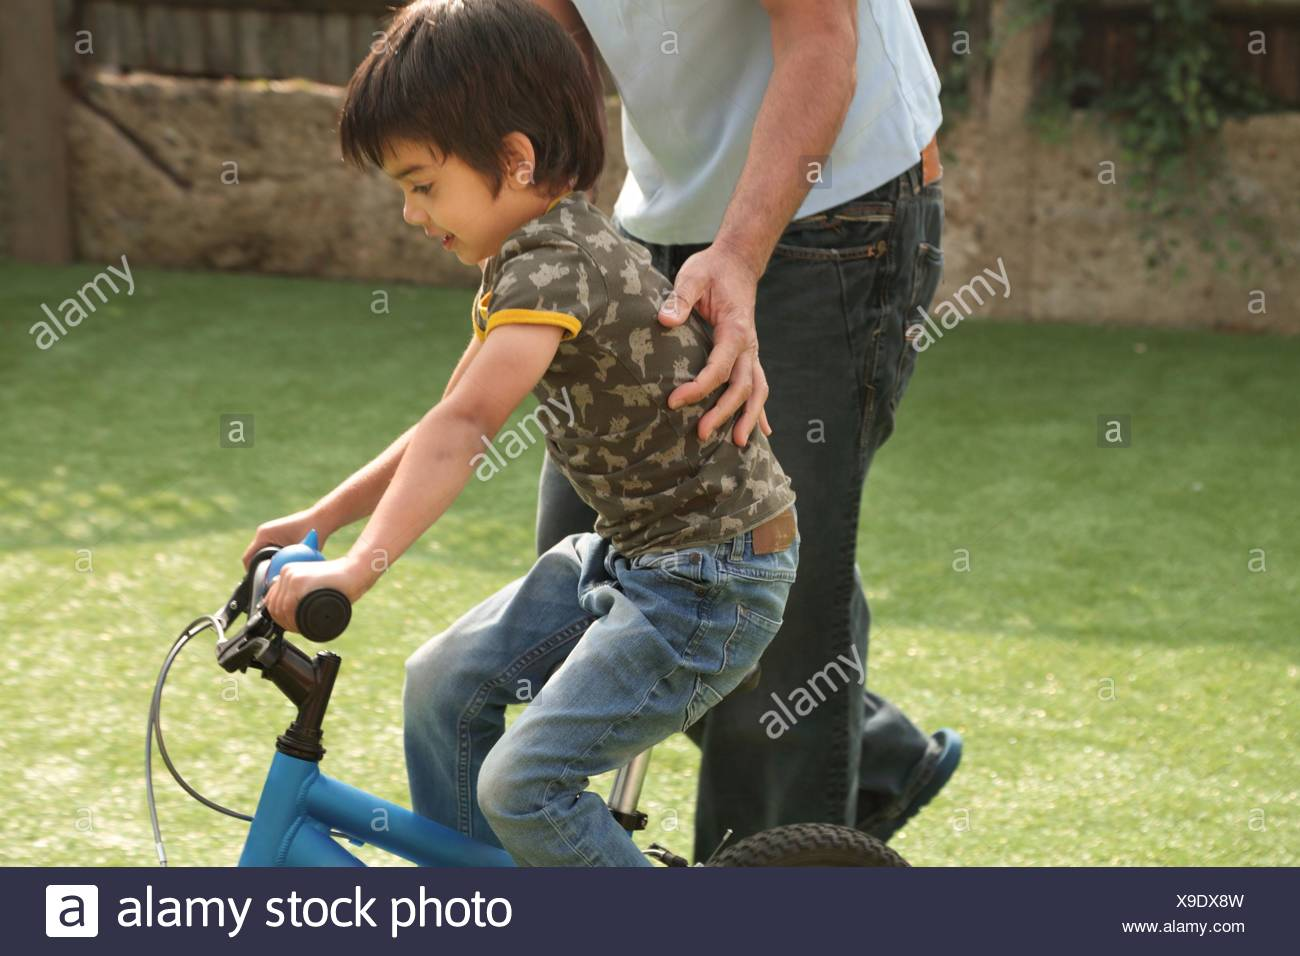 Side view of father supporting boy learning to ride bicycle - Stock Image